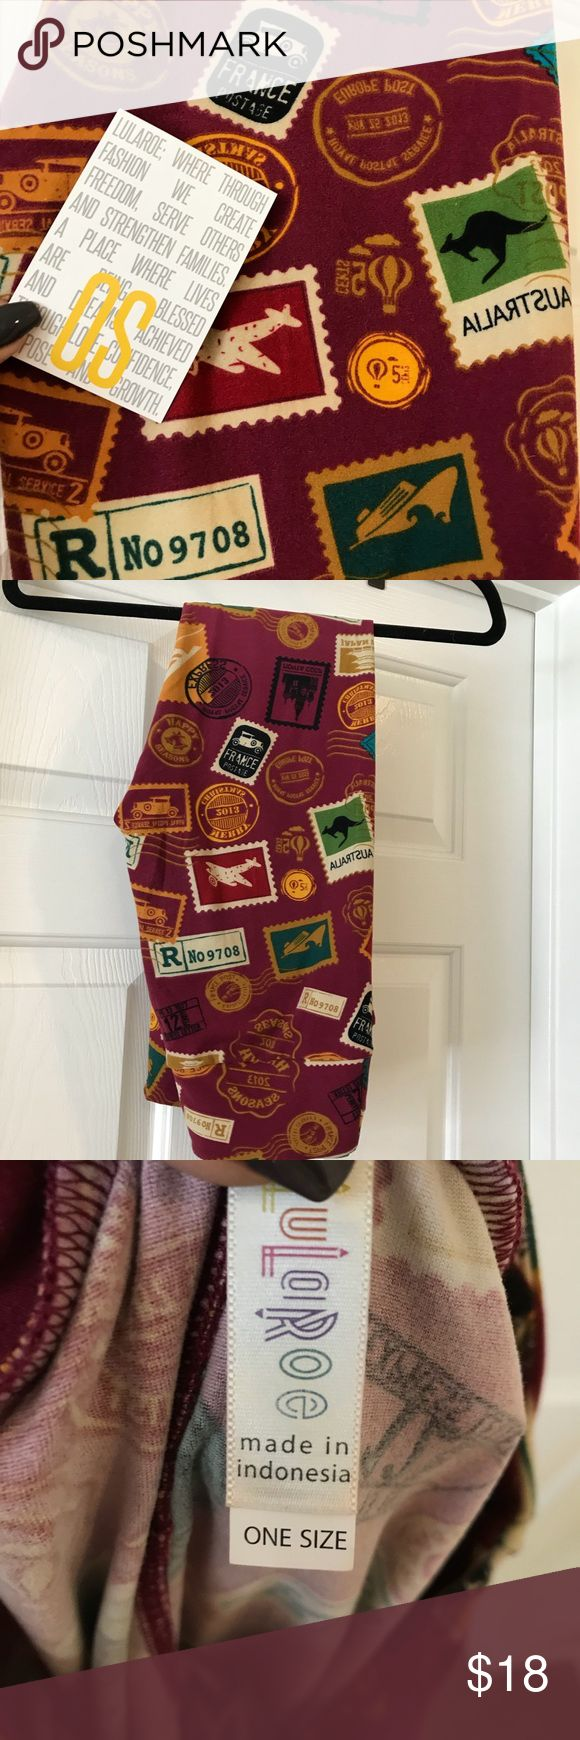 OS Lularoe leggings postage stamp EUC. Buttery soft leggings. One Size fits sizes 2-12. Bundle and save! Can see slight pilling in crotch area- price reflects. Cranberry background with postage stamps. LuLaRoe Pants Leggings